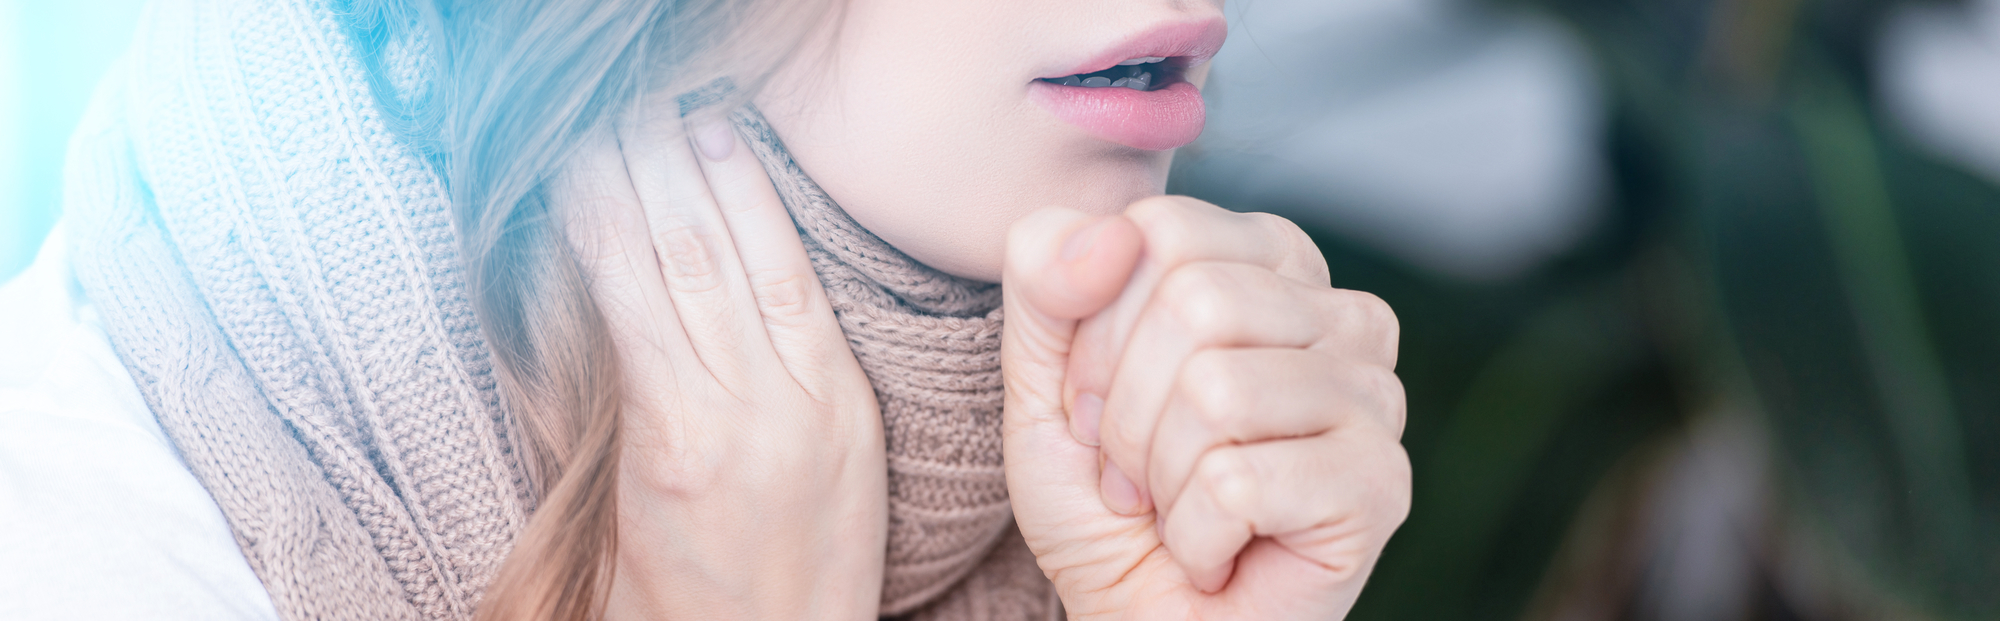 7 Self Care Tips For Sick Moms coughing woman